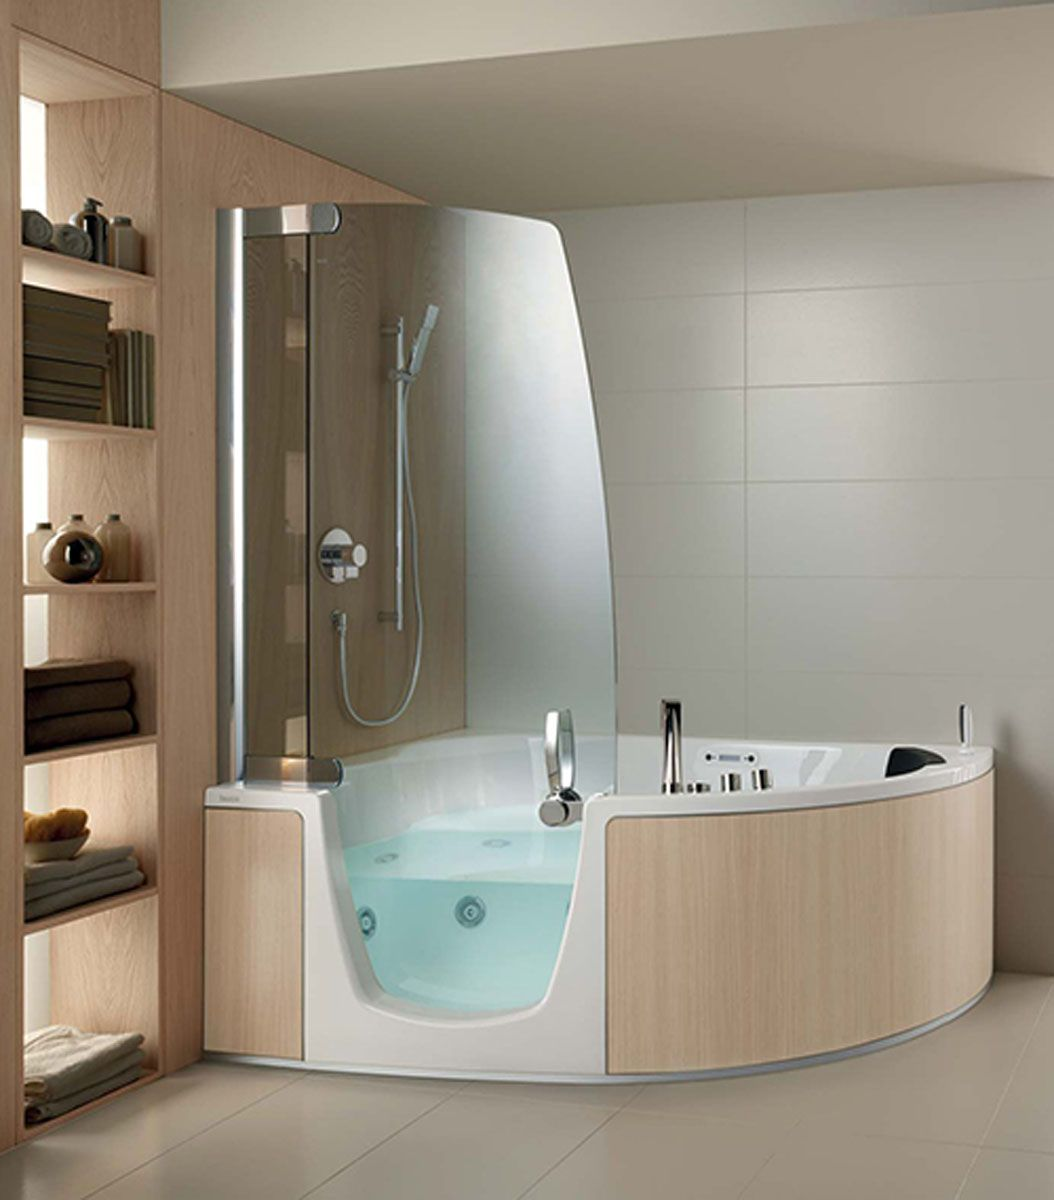 Bathroom Ideas Corner Bath small corner bathtub with shower | hot tubs & jacuzzis | pinterest